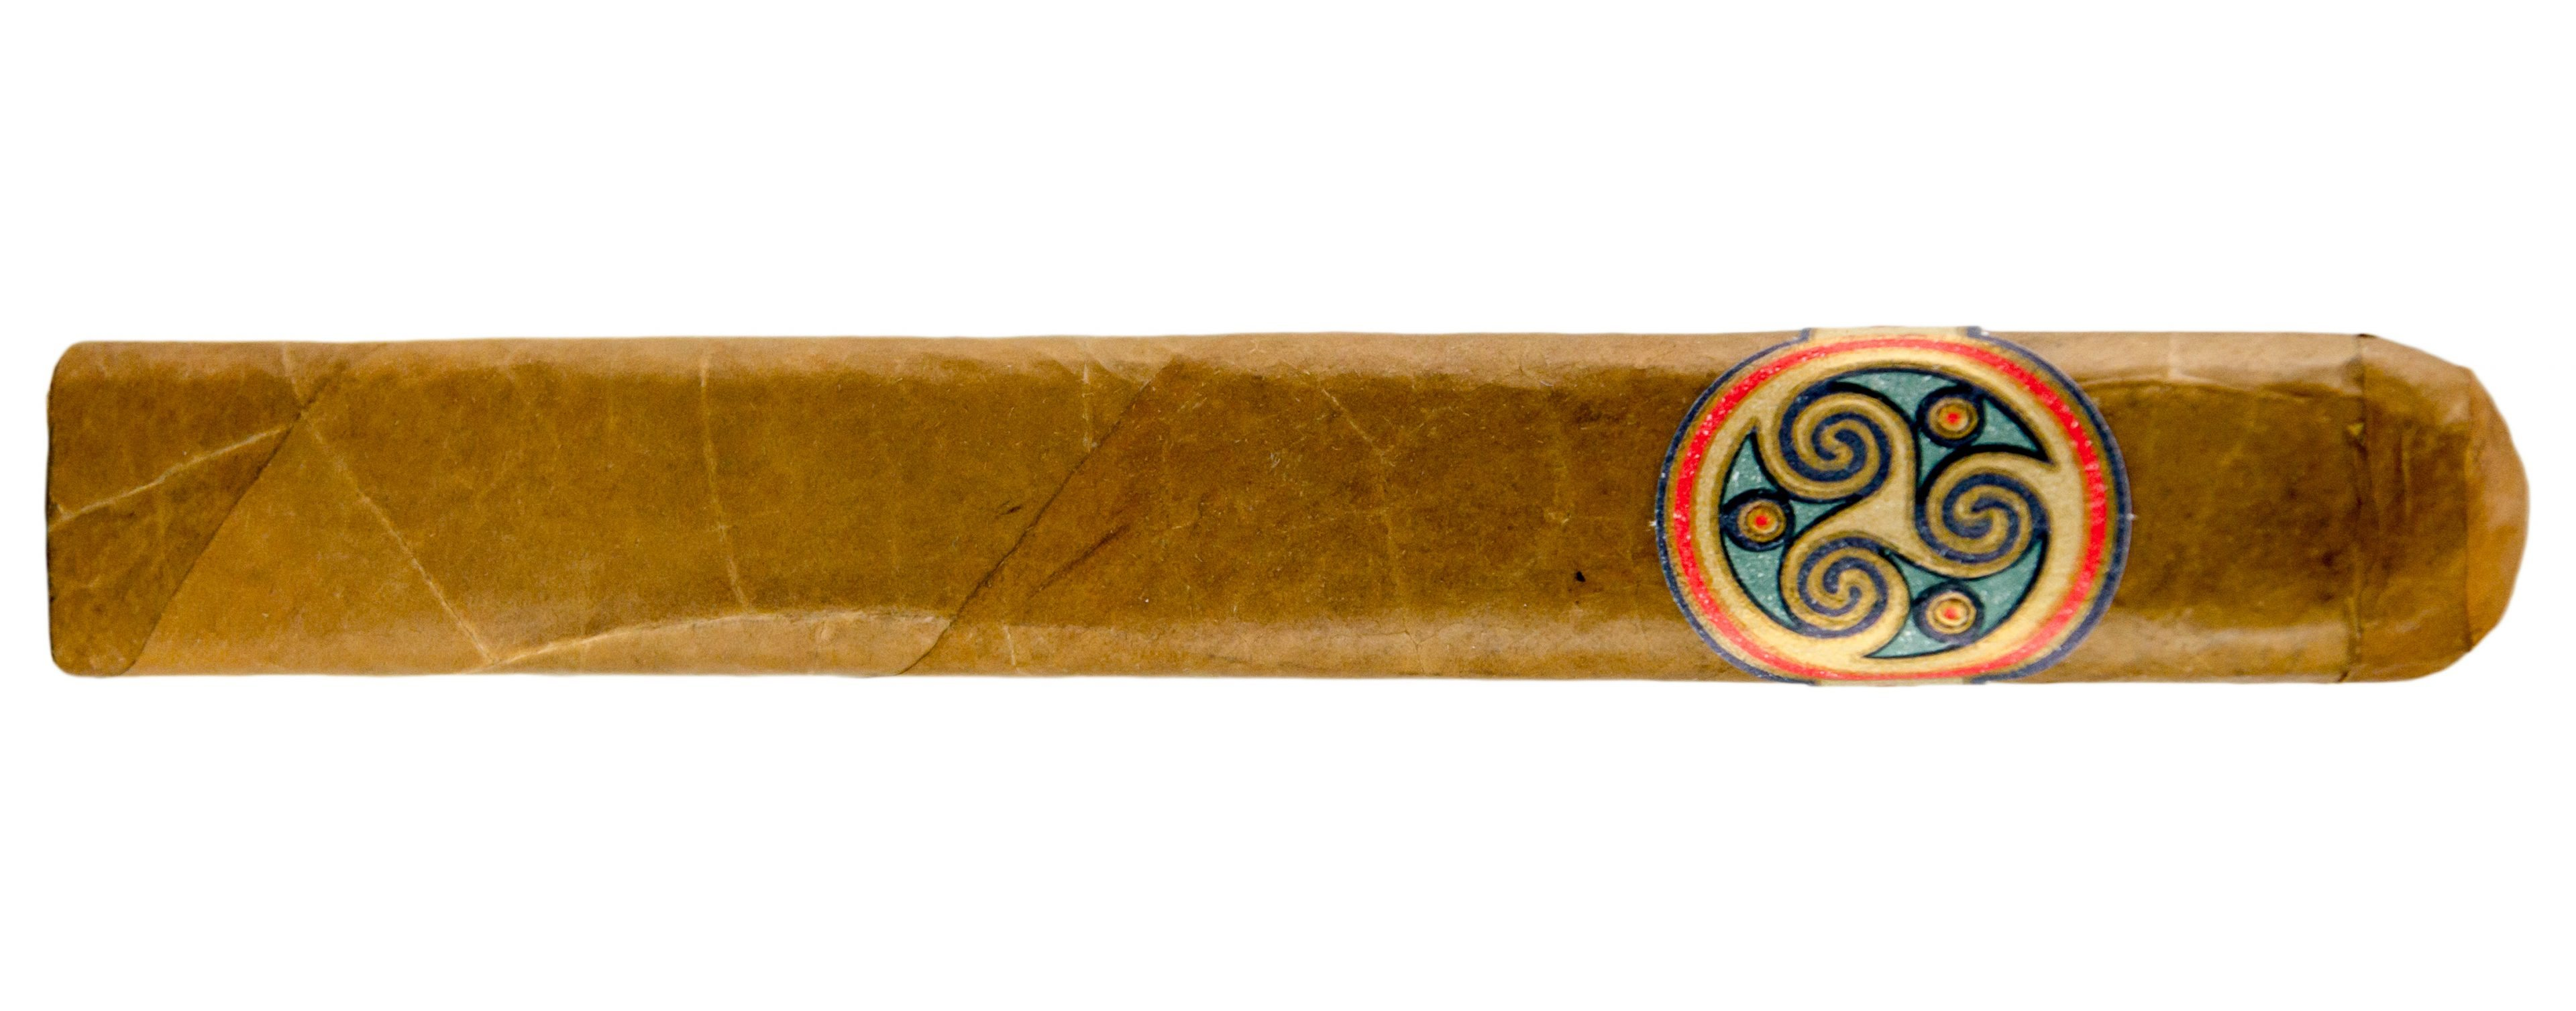 Blind Cigar Review: Mbombay | Gaaja